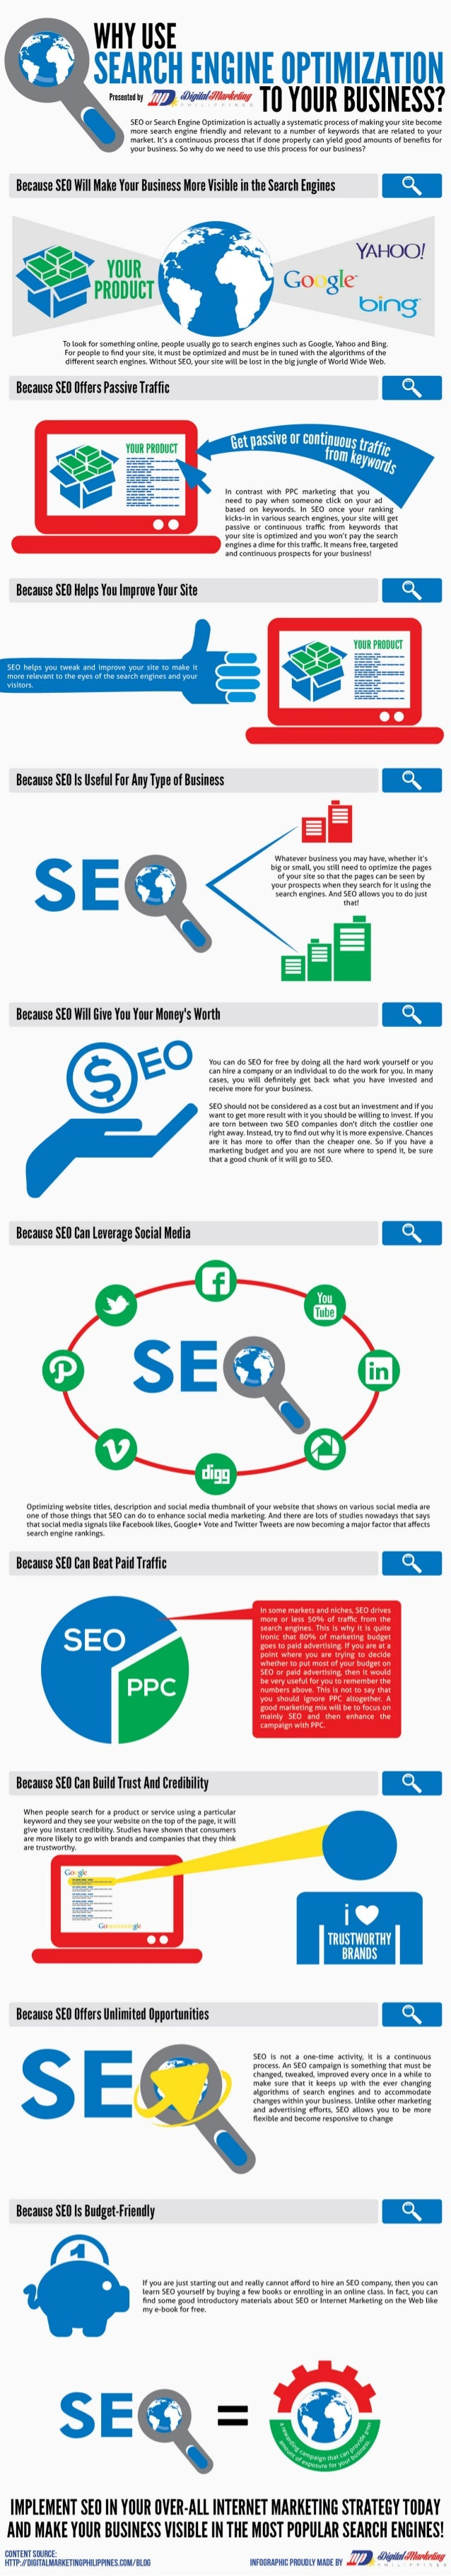 Why Use SEO to Your Business?